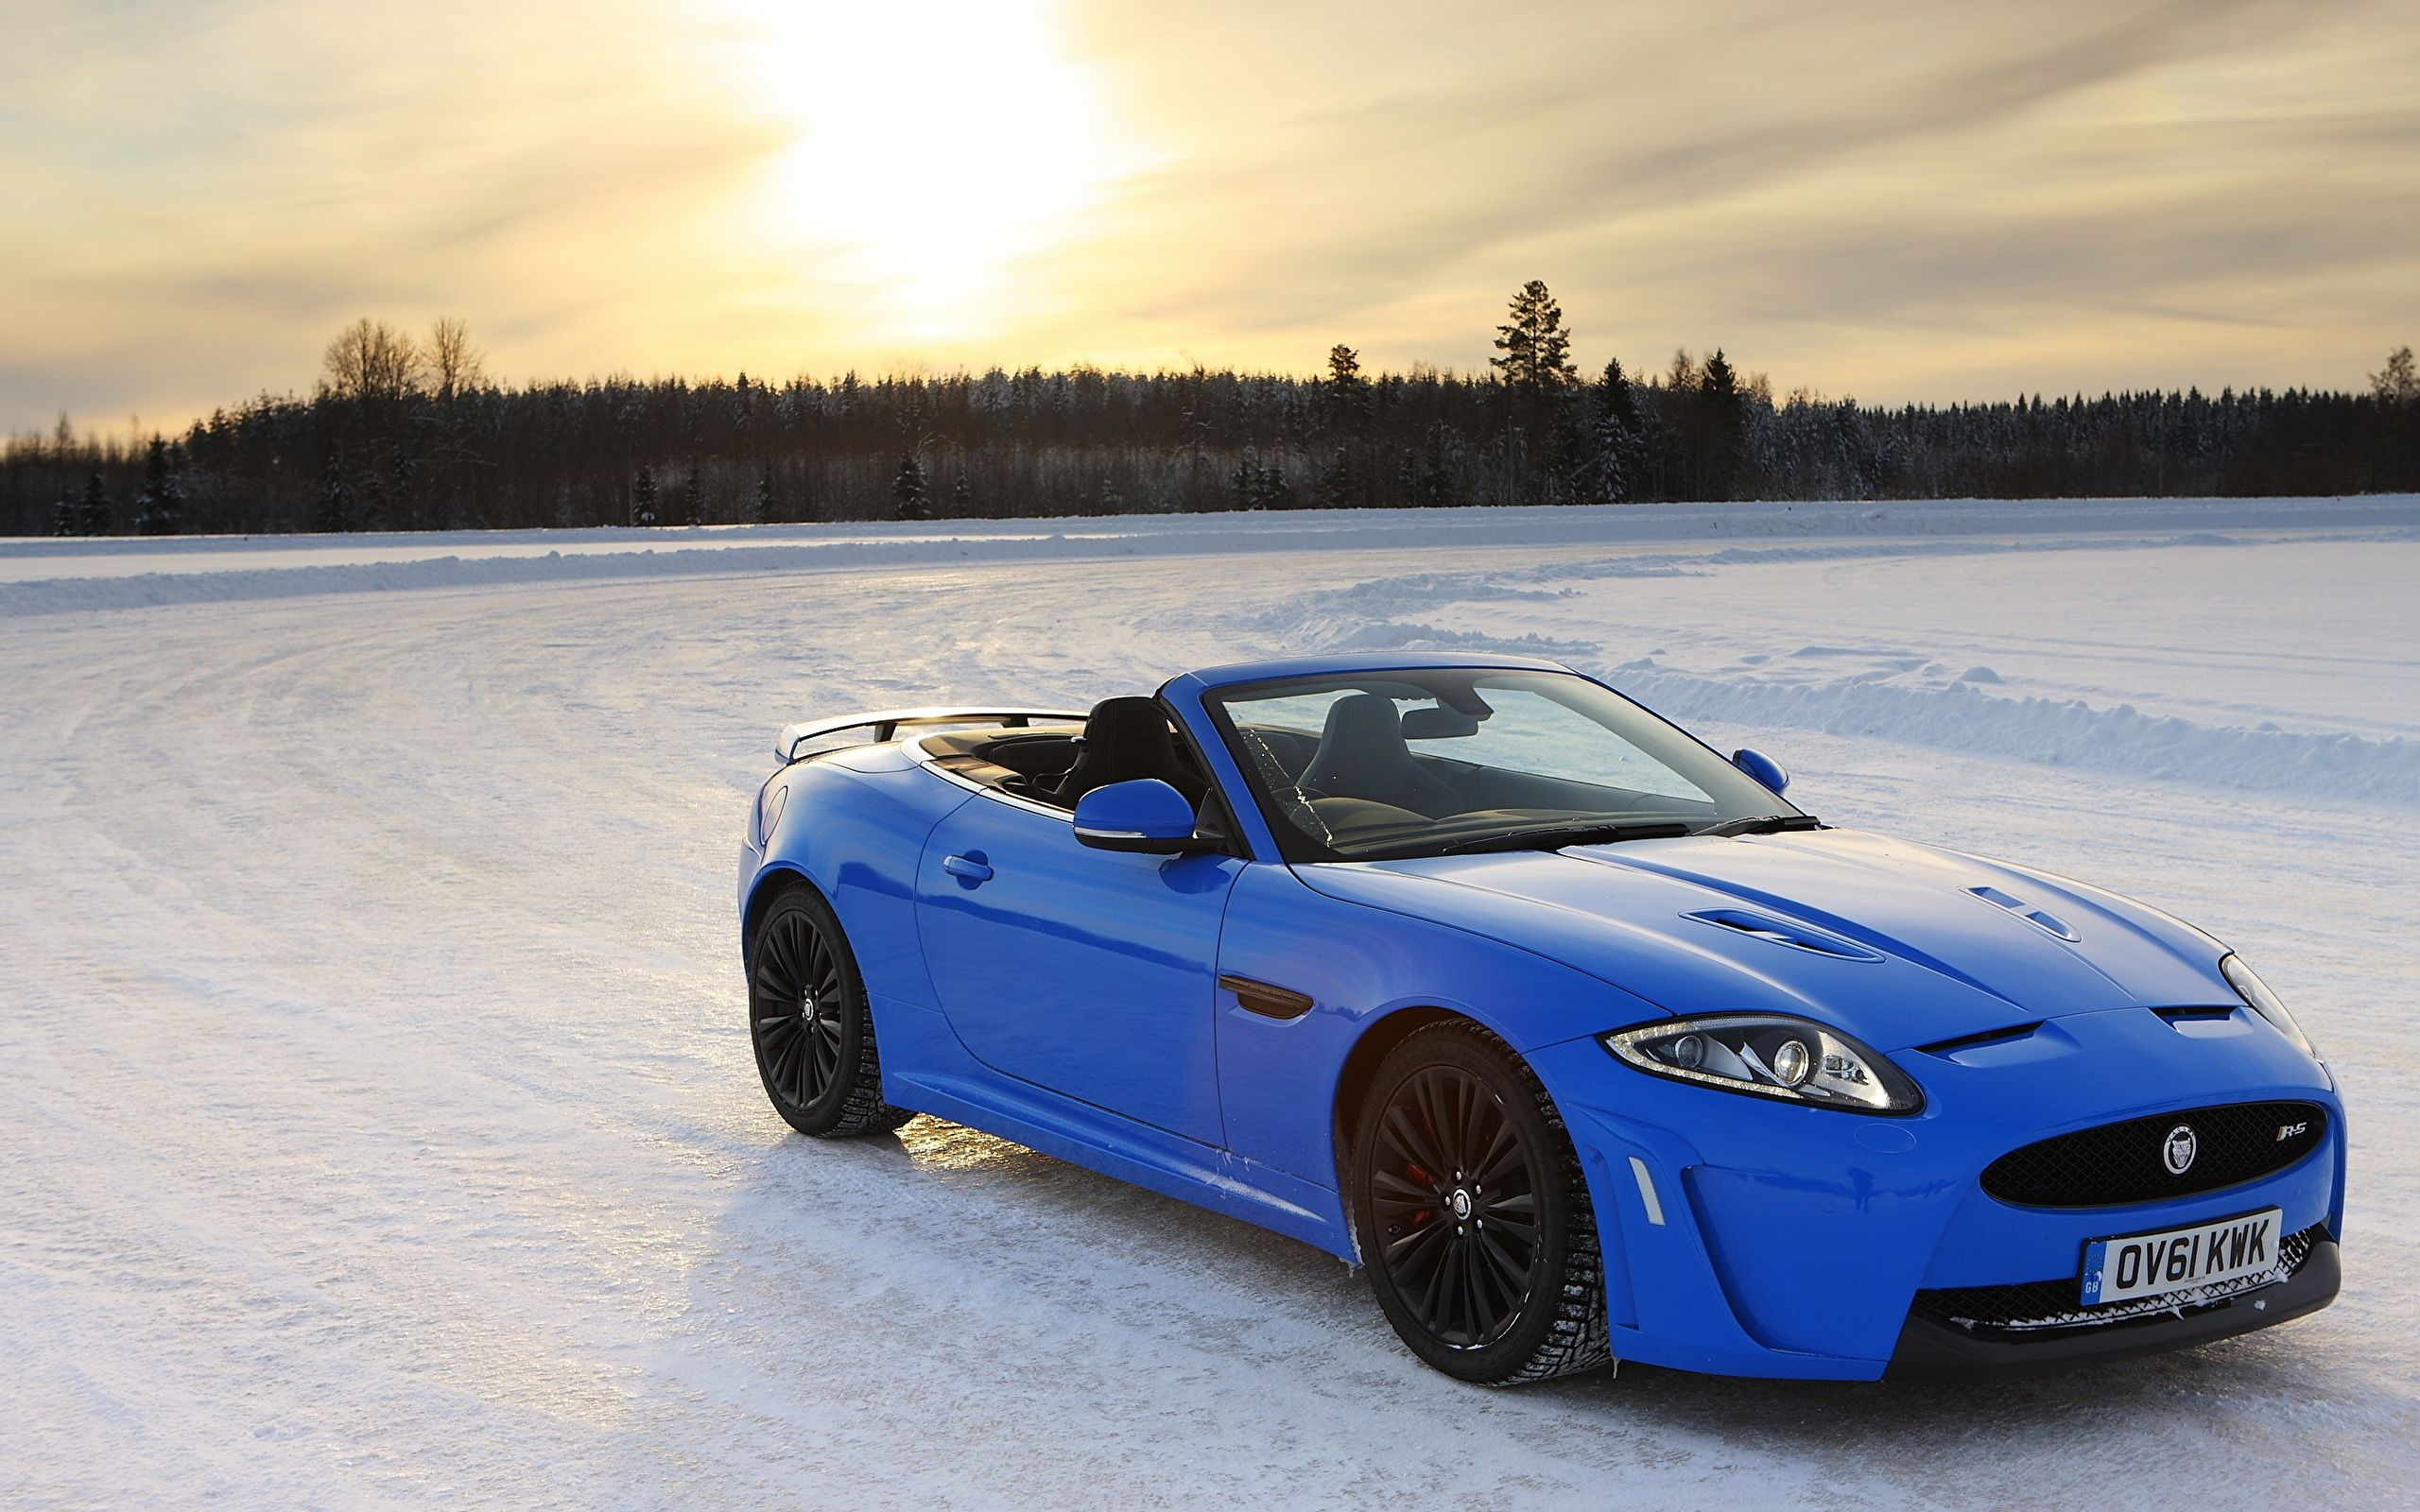 Blue Jaguar Xkr Wallpapers Top Free Blue Jaguar Xkr Backgrounds Wallpaperaccess